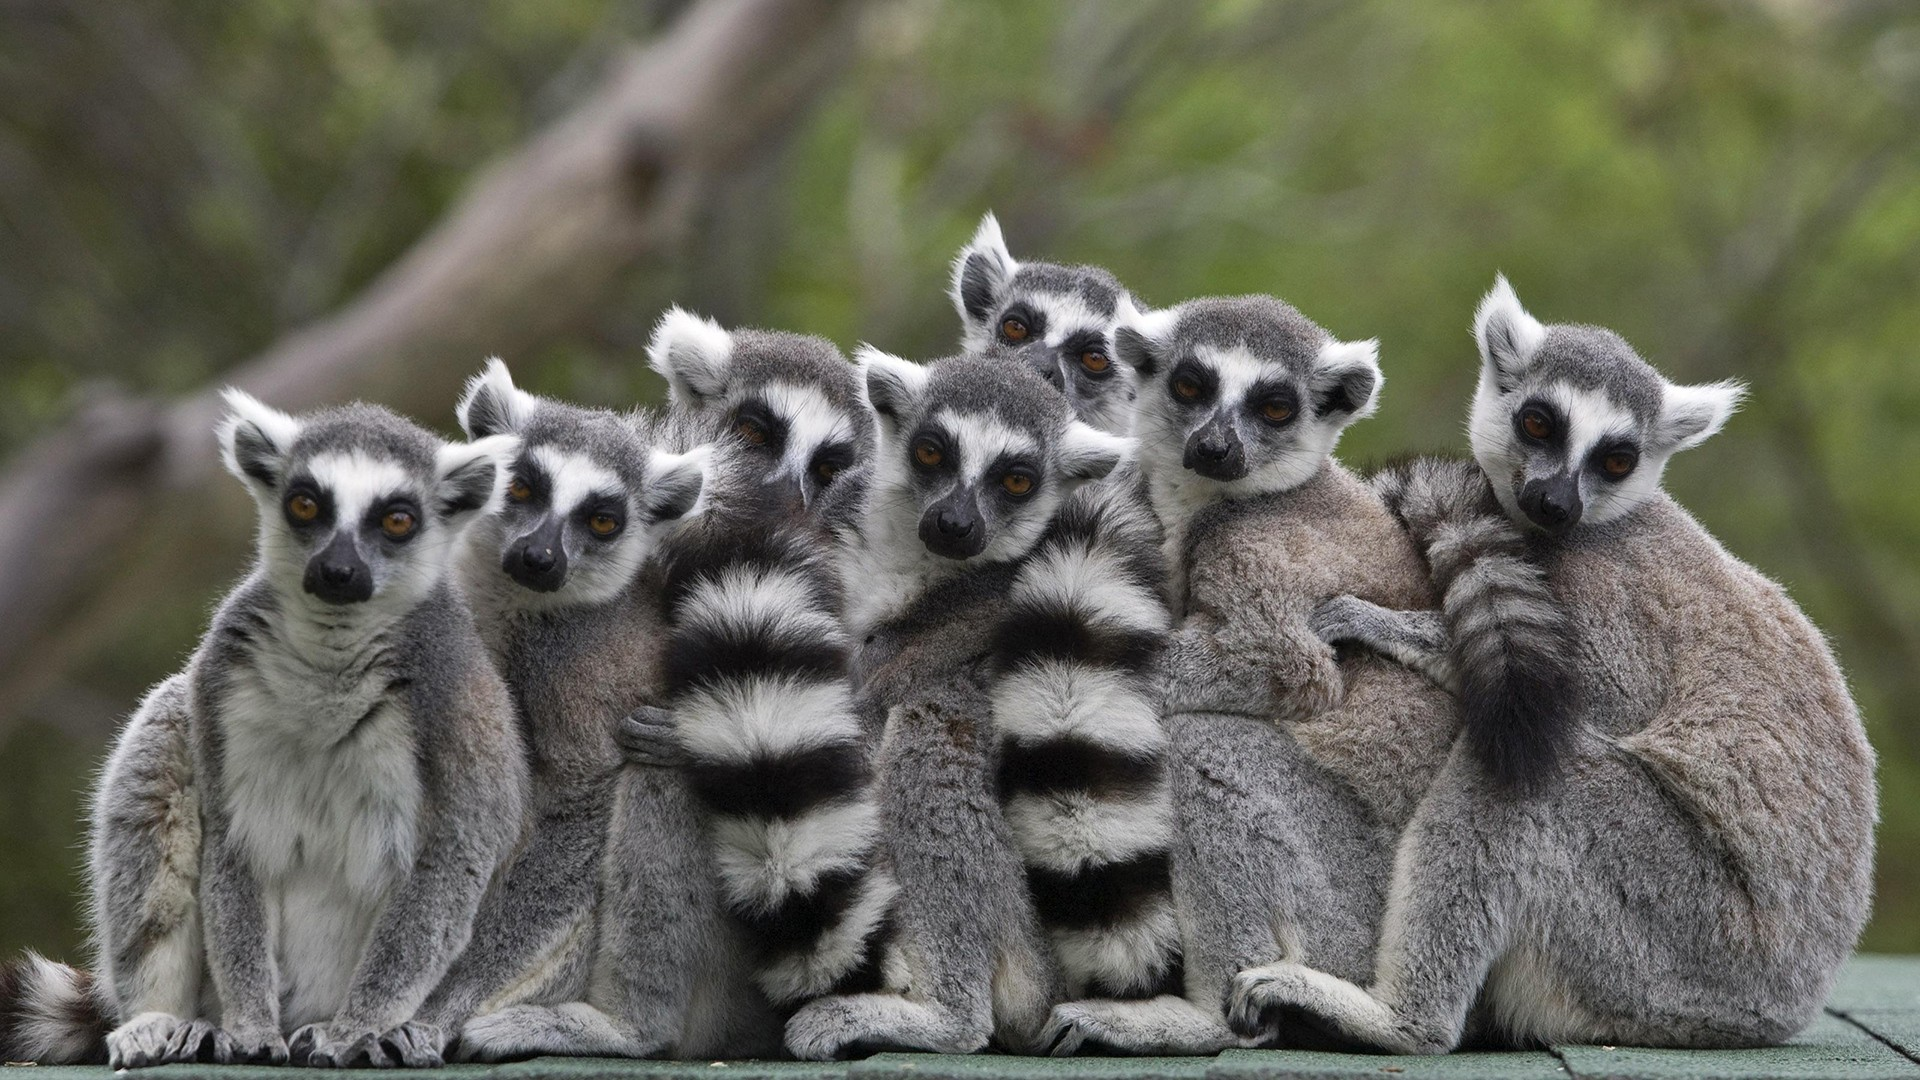 Image: File photo of ring-tailed lemurs standing together at the Haifa zoo